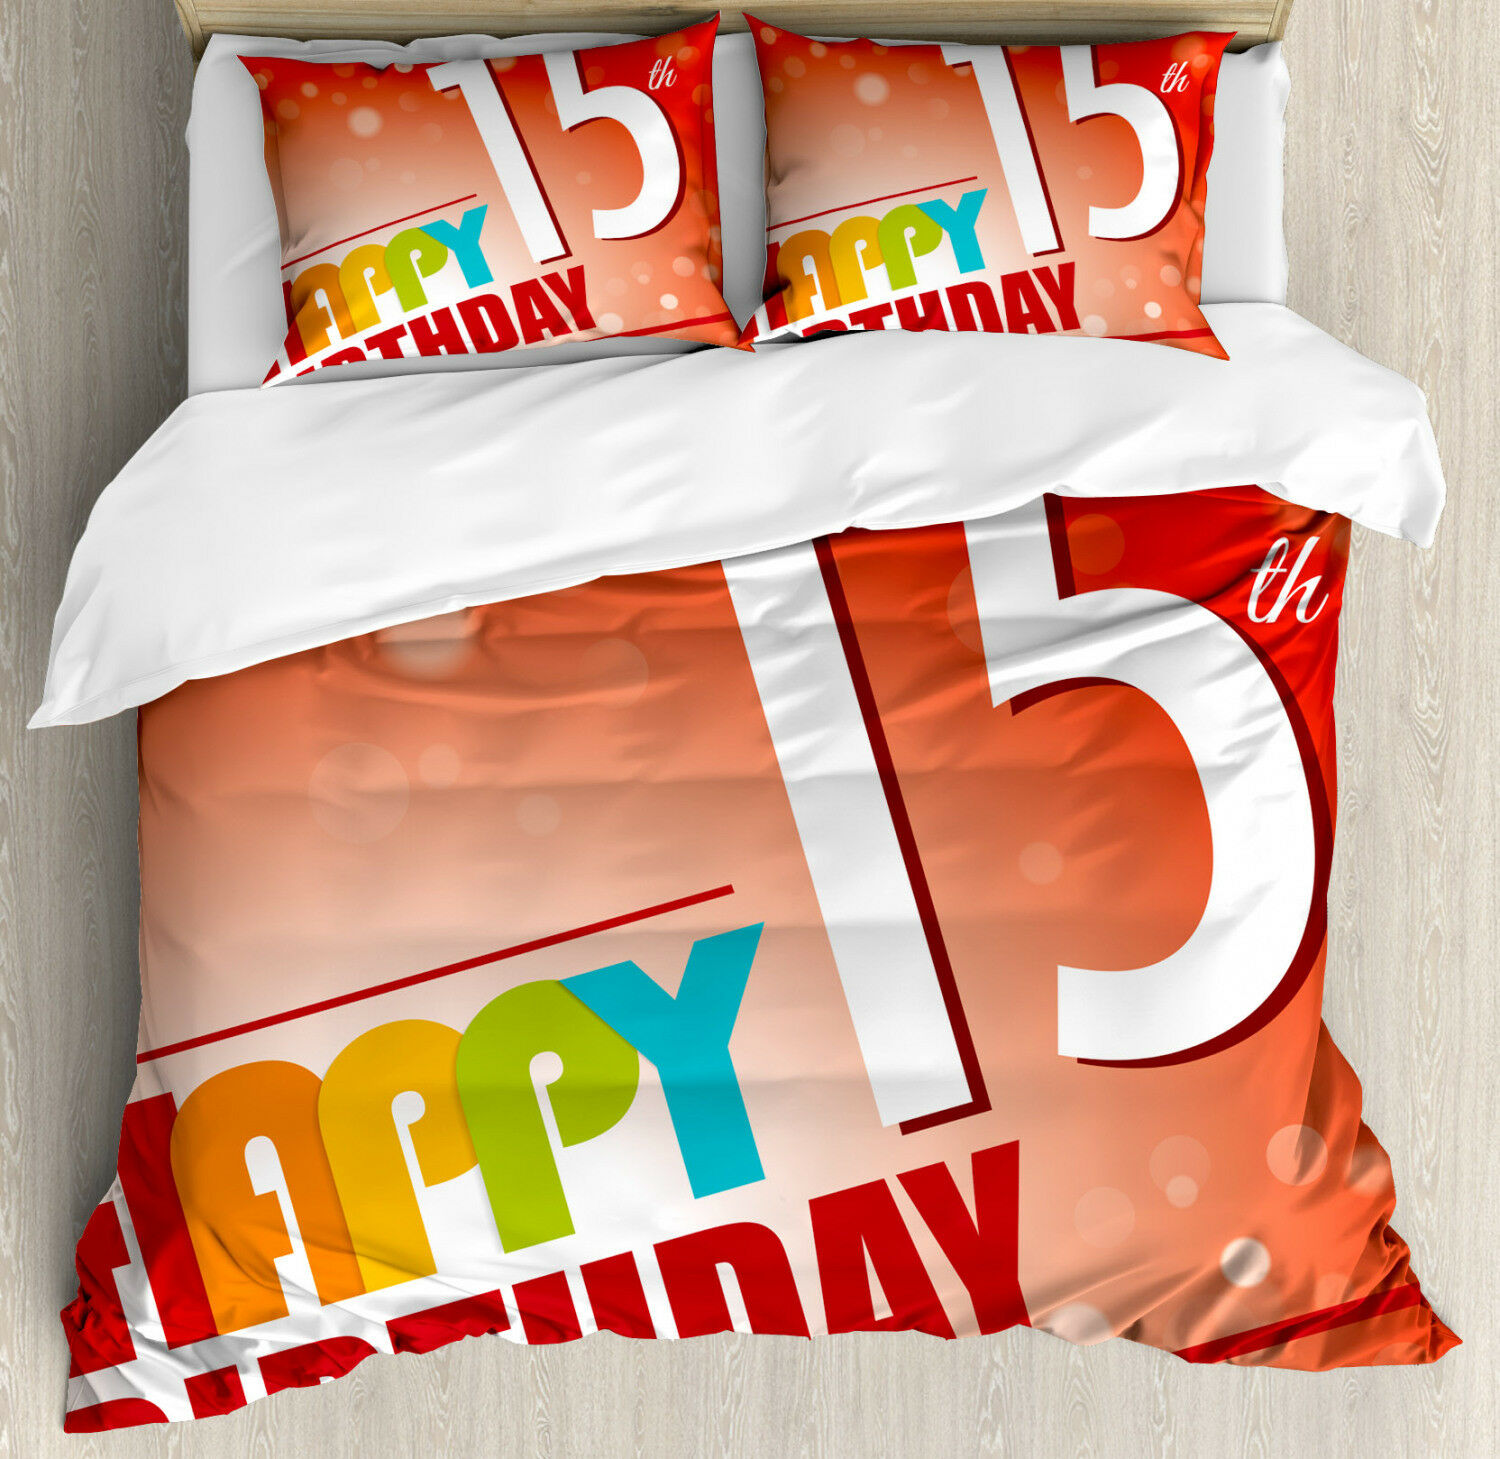 Red Duvet Cover Set with Pillow Shams 15th Birthday Concept Print